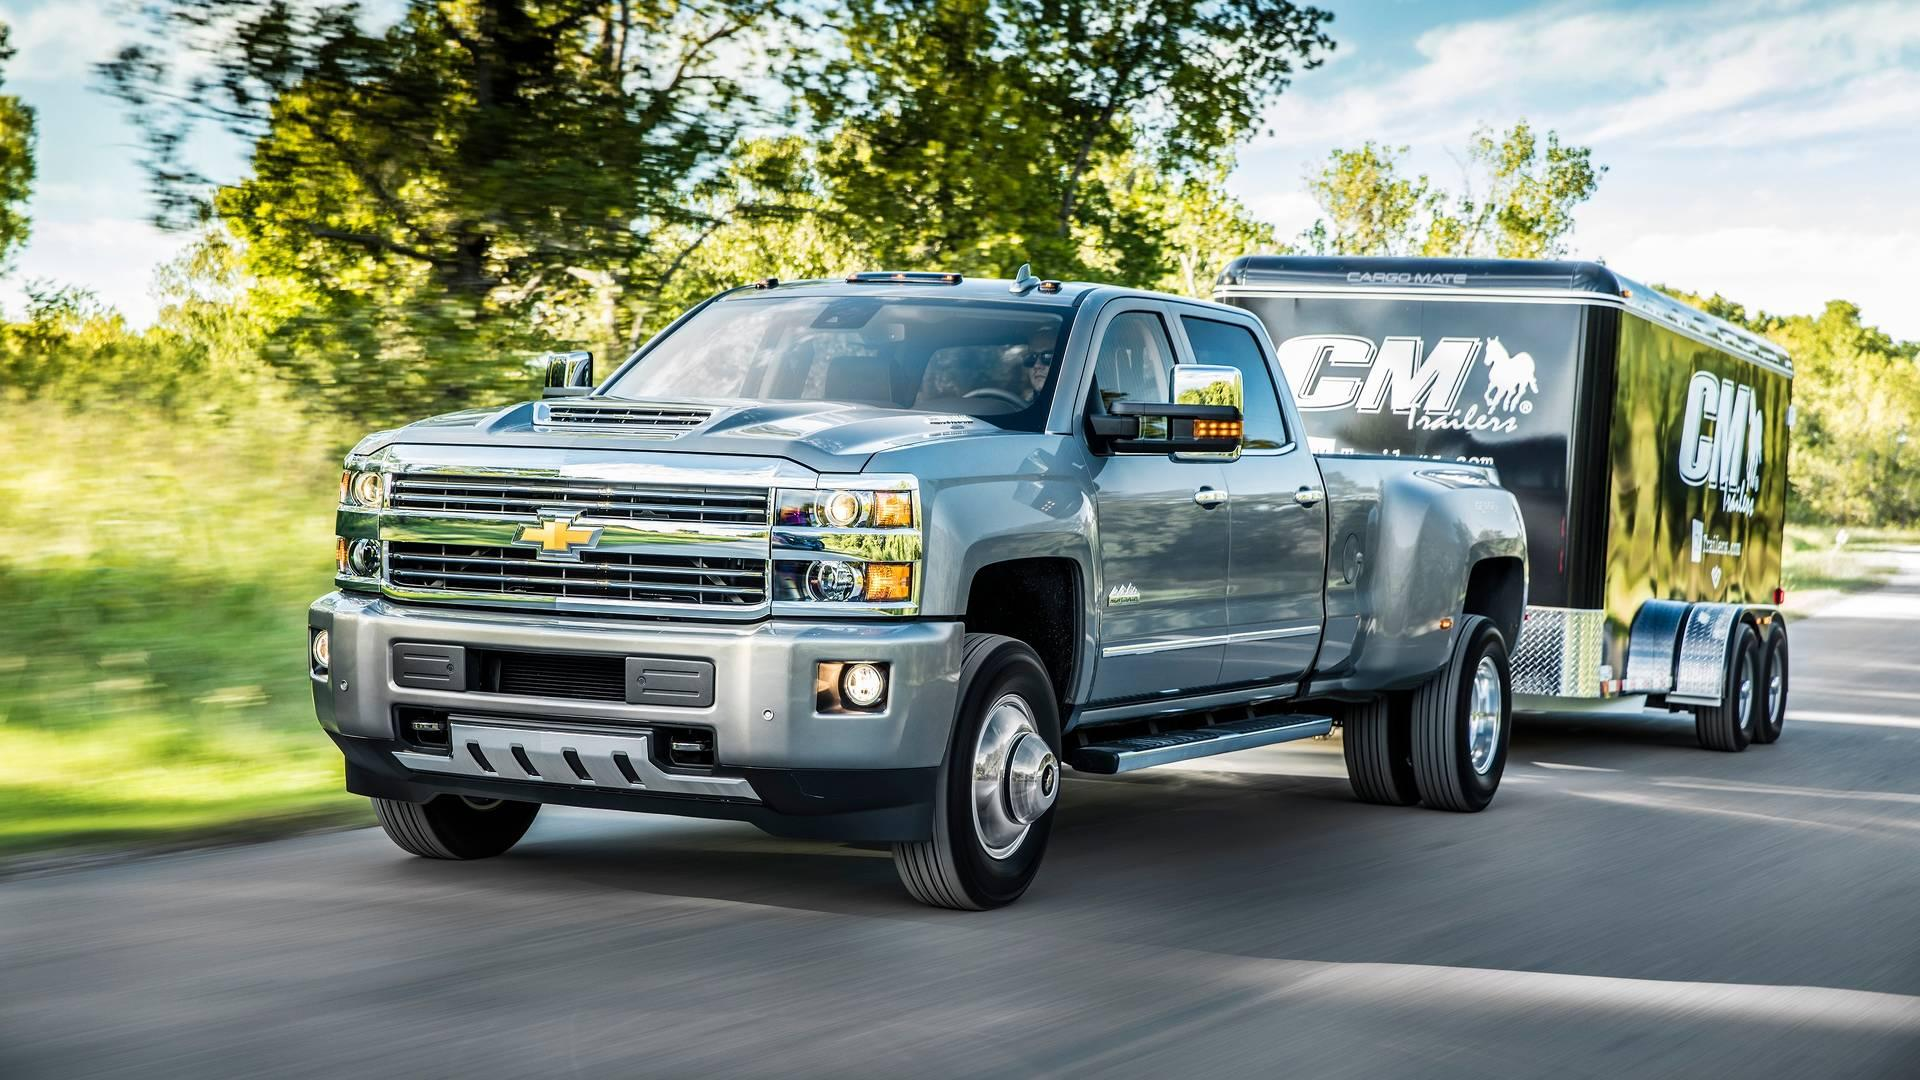 """<p>The heavy-duty pickup truck class of 2014 consisted of only four models, with the two General Motors entries receiving perfect scores for powertrain dependability from JD Power. Though the <a href=""""https://www.motor1.com/chevrolet/silverado-hd/"""" rel=""""nofollow noopener"""" target=""""_blank"""" data-ylk=""""slk:Silverado"""" class=""""link rapid-noclick-resp"""">Silverado</a> and <a href=""""https://www.motor1.com/gmc/sierra-hd/"""" rel=""""nofollow noopener"""" target=""""_blank"""" data-ylk=""""slk:Sierra HD"""" class=""""link rapid-noclick-resp"""">Sierra HD</a> three-quarter and one-ton models are mechanically identical, the Sierra gets below-average marks for body and interior dependability from JDP. According to <em>Consumer Reports</em> surveys, the 2014 models score above average in most regards, but get lower marks for minor engine problems, which CR defines as issues with """"accessory belts and pulleys, engine computer, engine mounts, engine knock or ping, (or) oil leaks.""""</p>"""